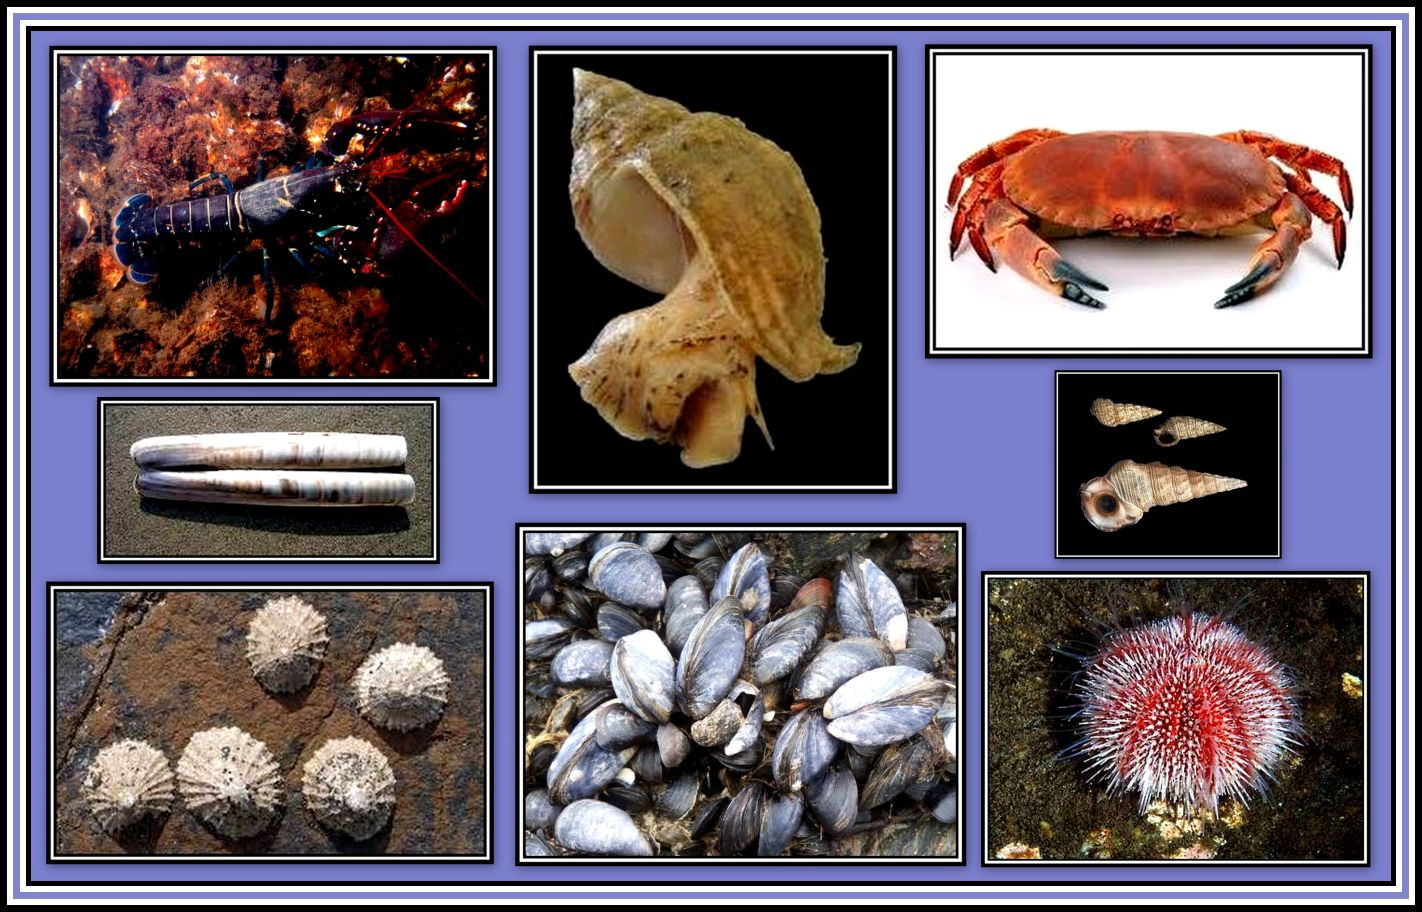 Animals of the Seashore Collage